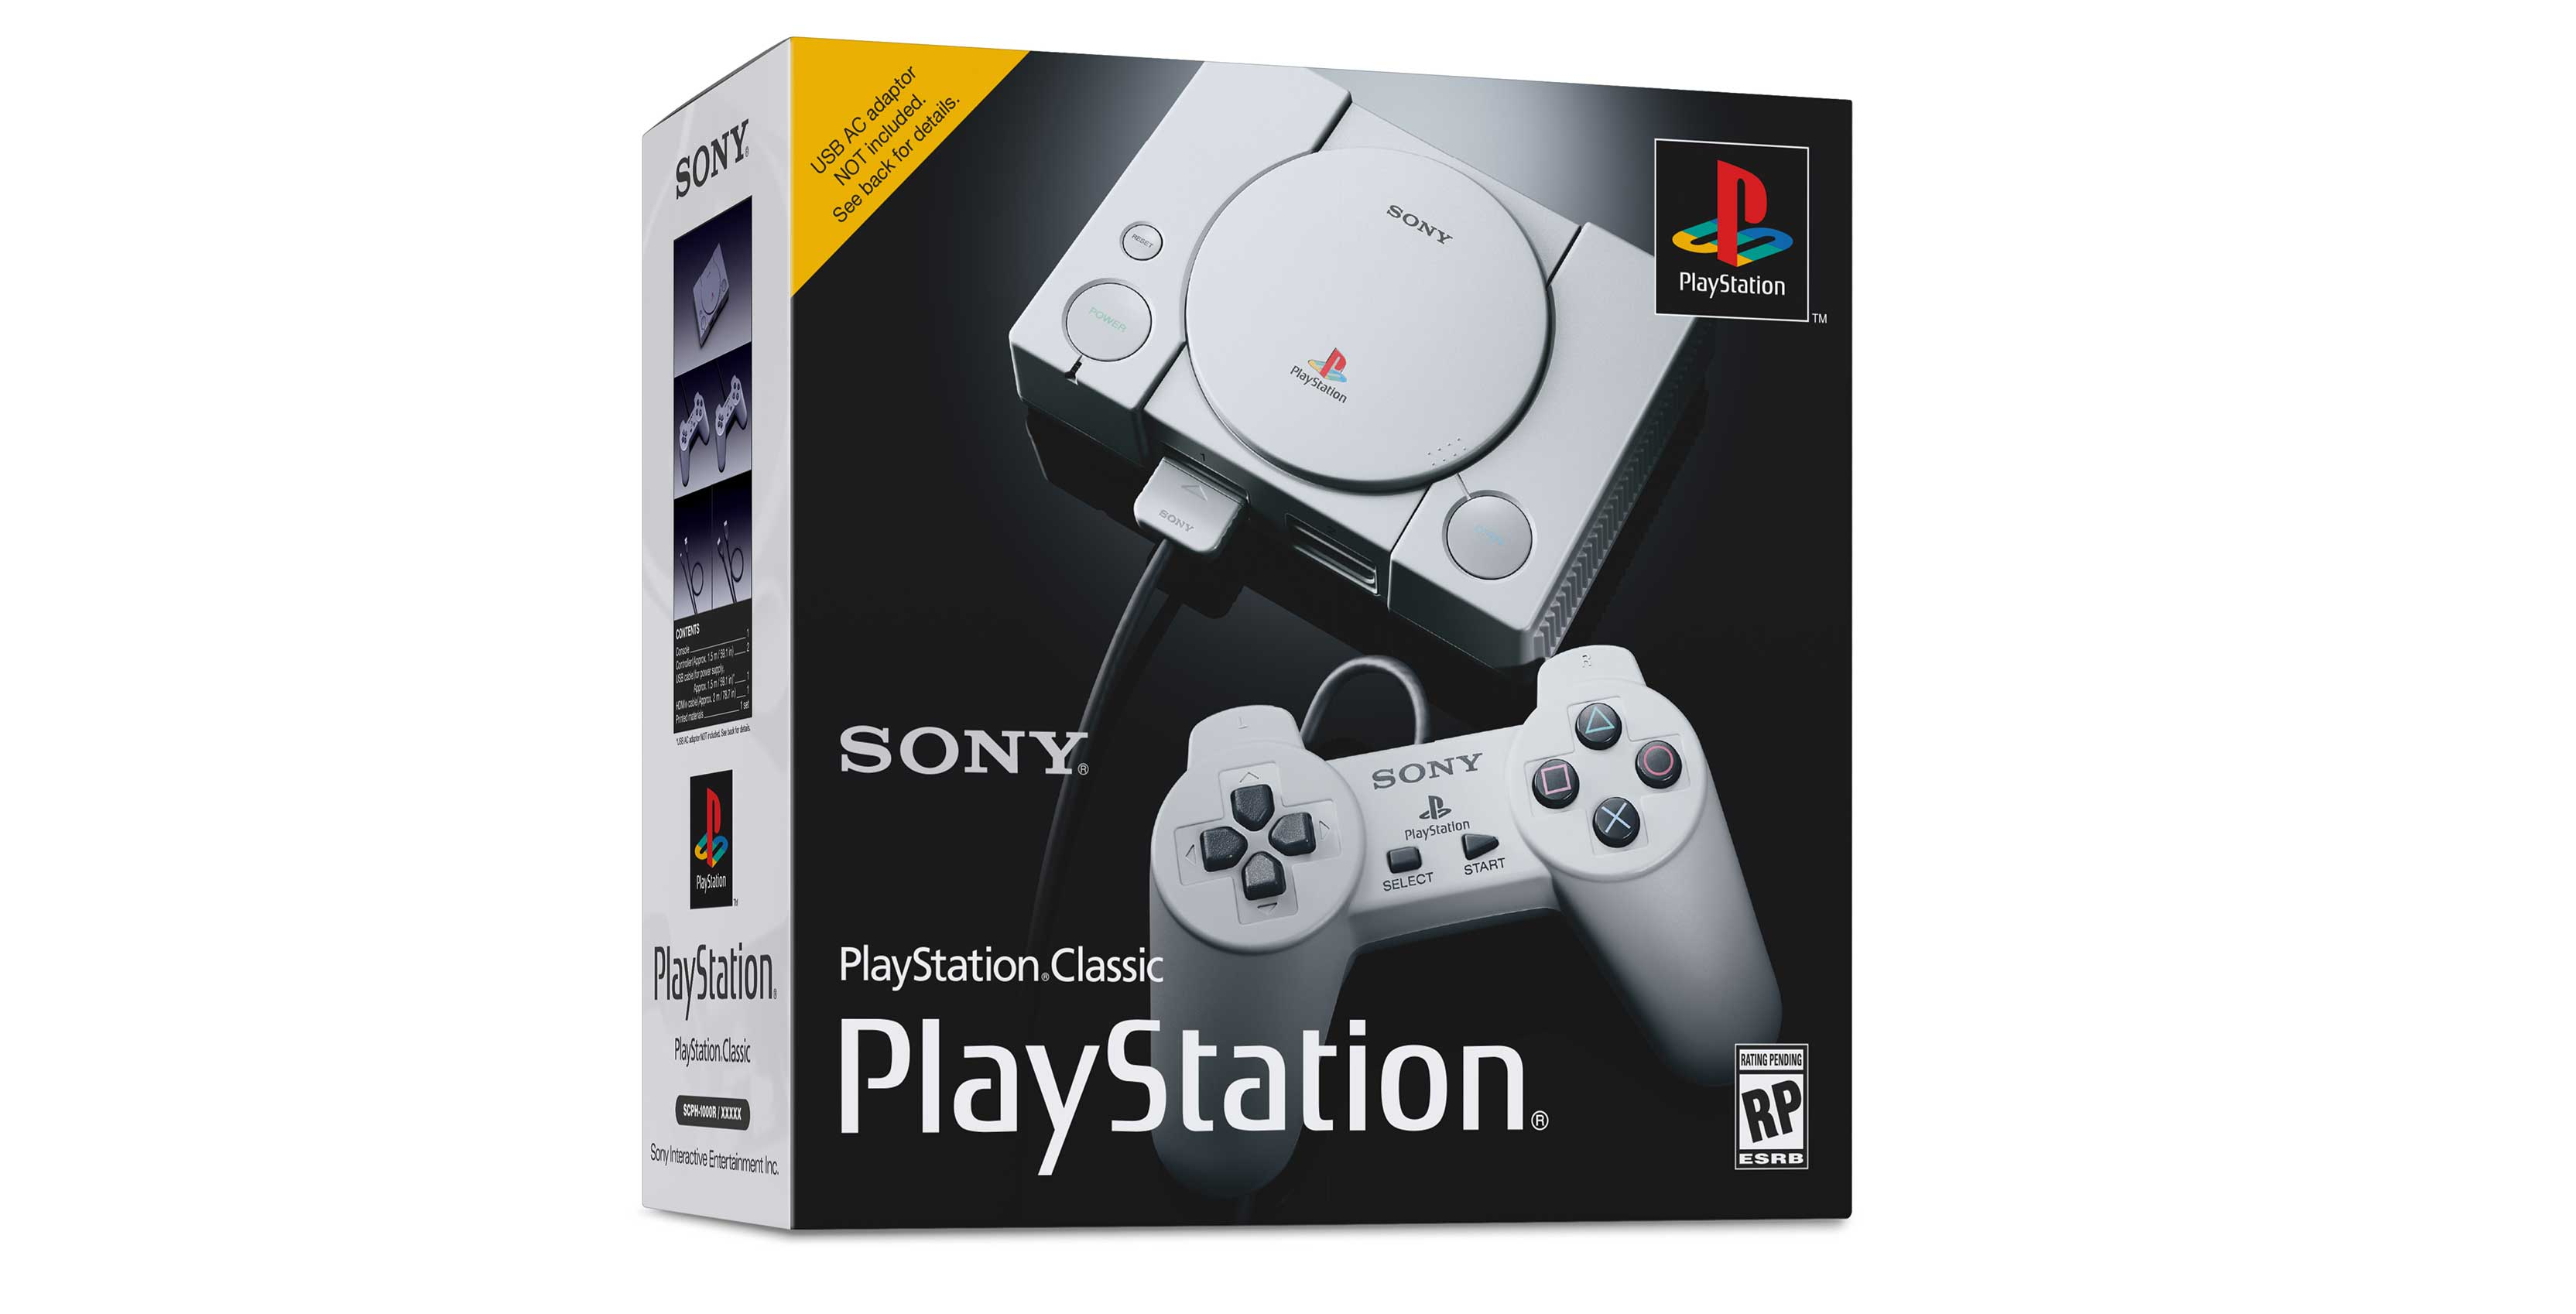 PlayStation Classic packaging